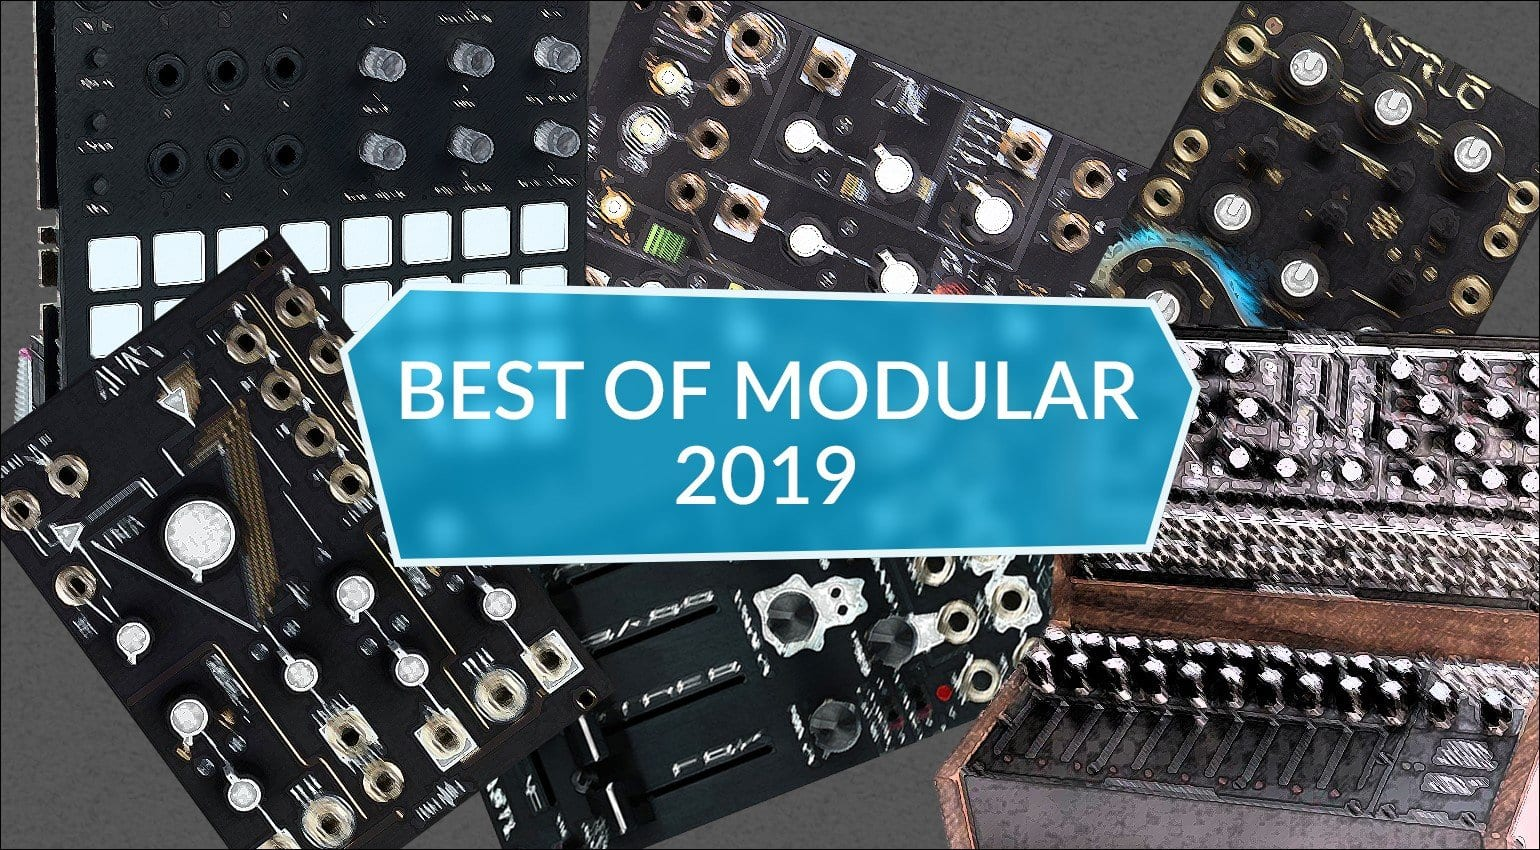 best eurorack modules 2019 top 5 modular synths and effects